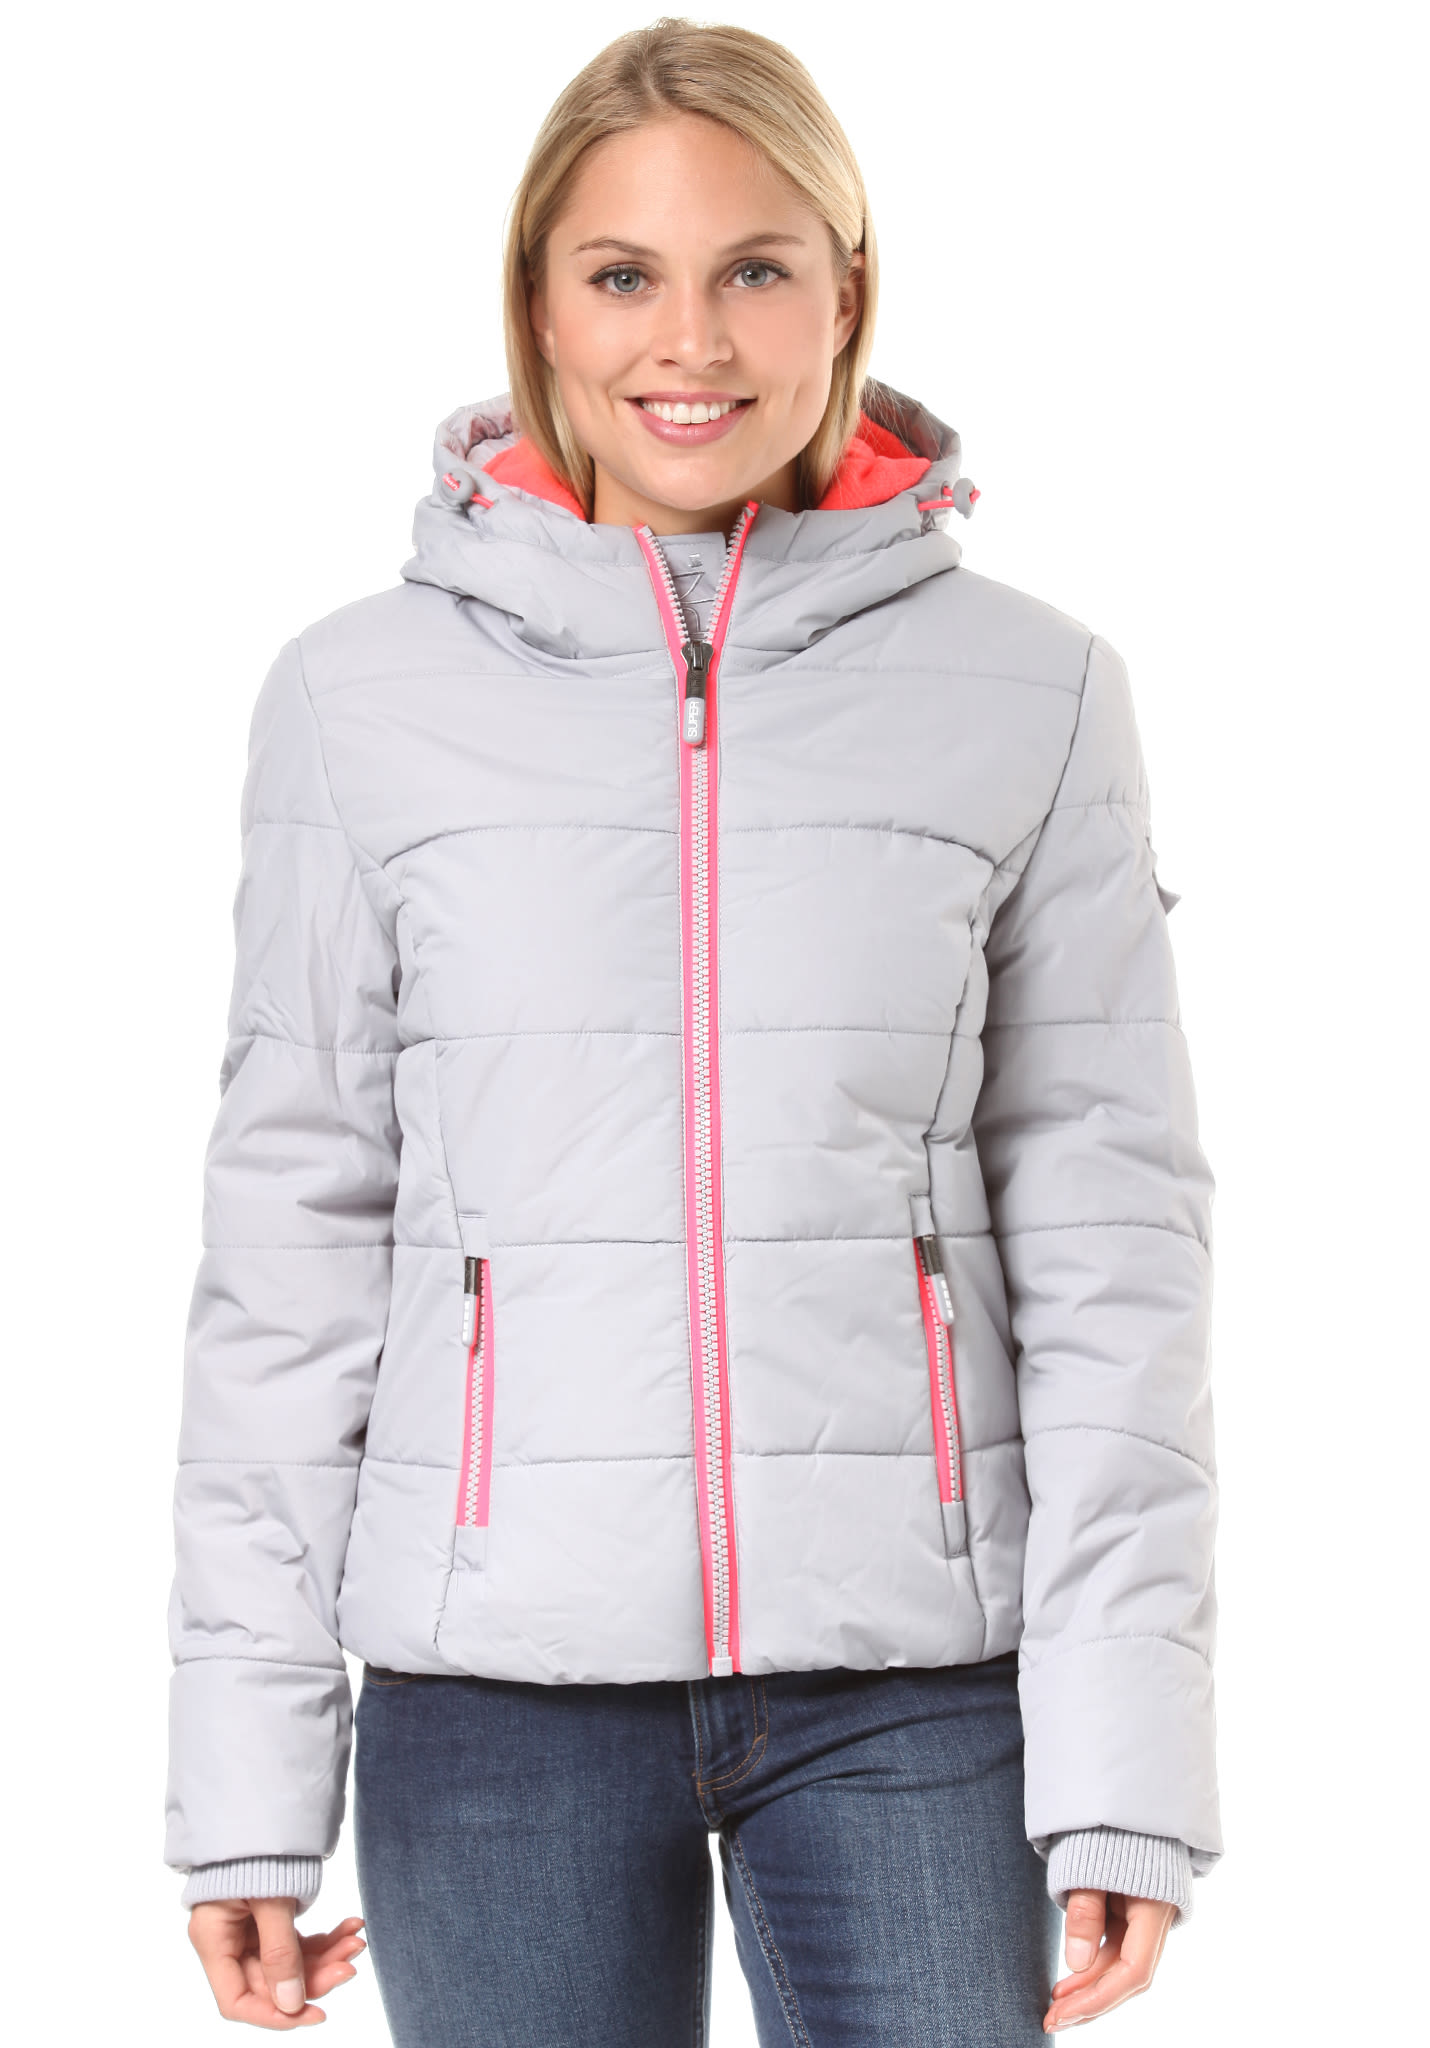 af62f7bc16a0 ᐅ Superdry Sale   Outlet  bis zu -50%   PLANET SPORTS